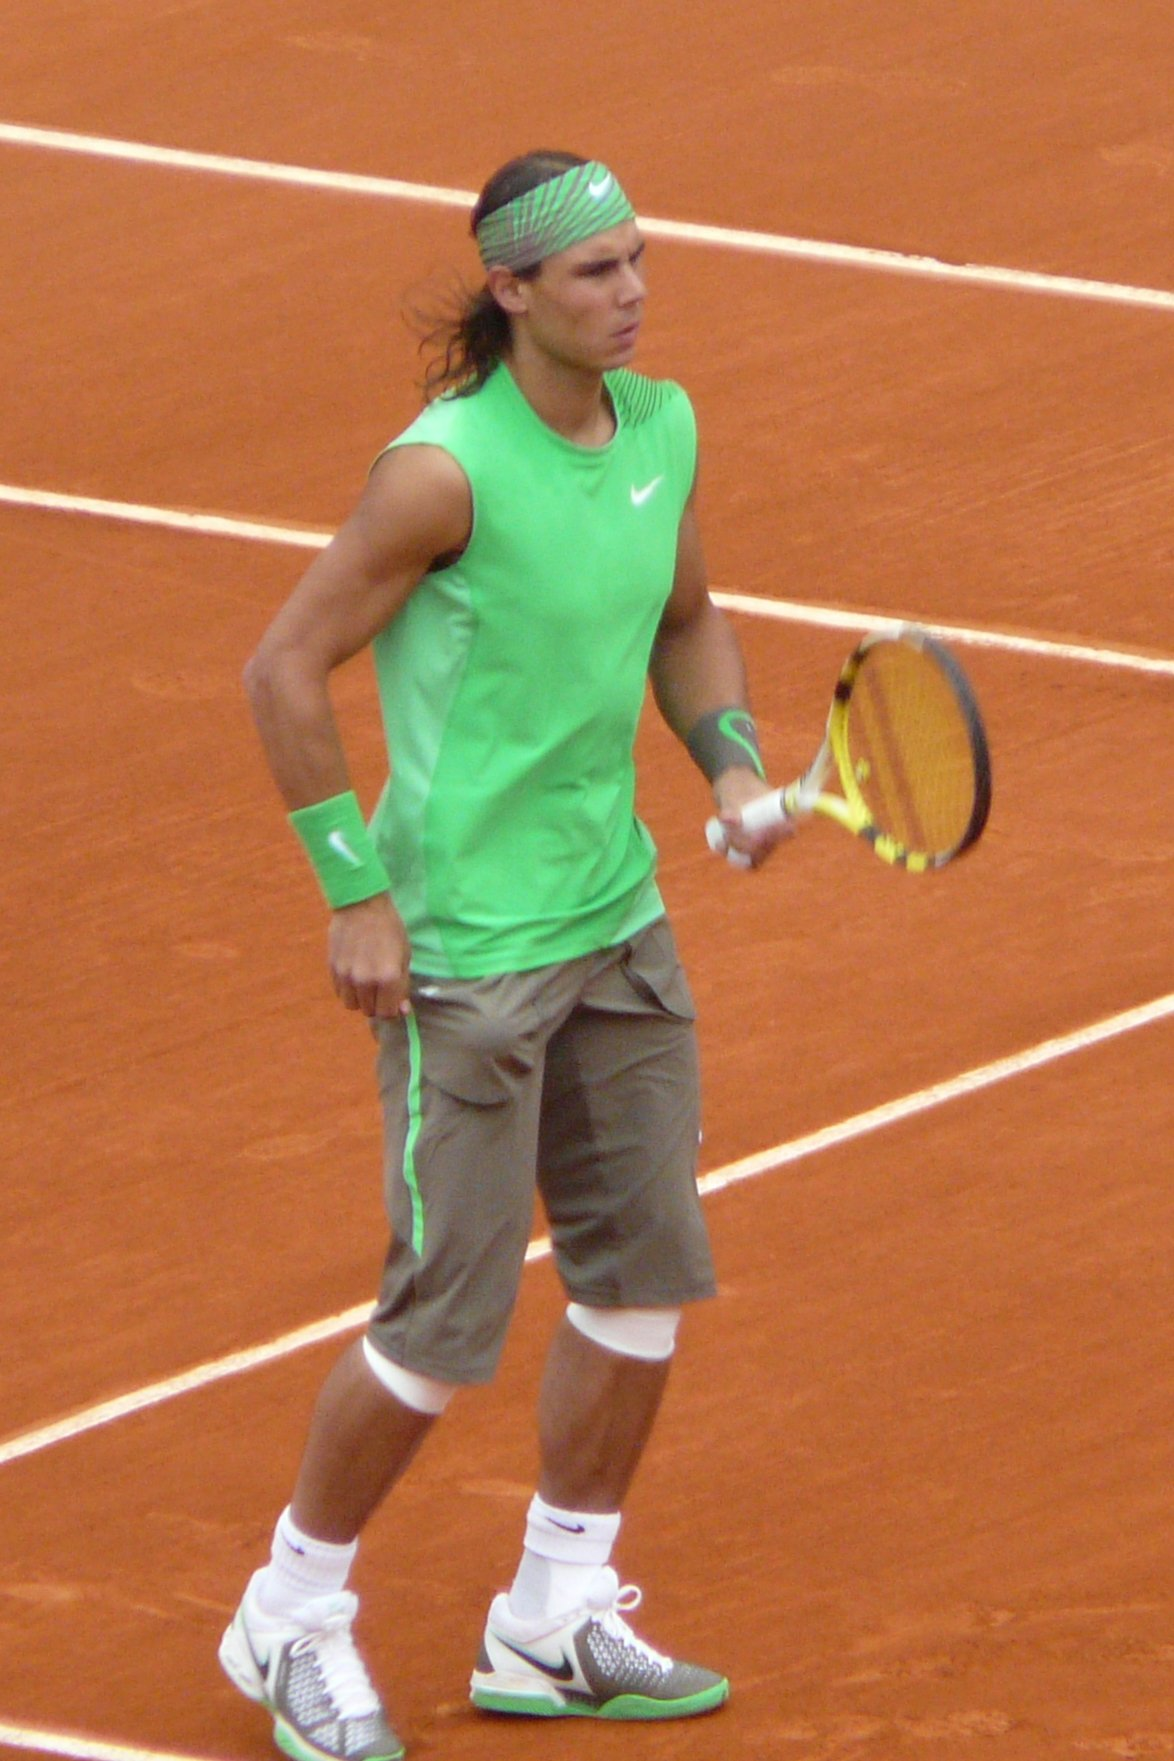 Rafael_Nadal_at_the_2008_French_Open_7